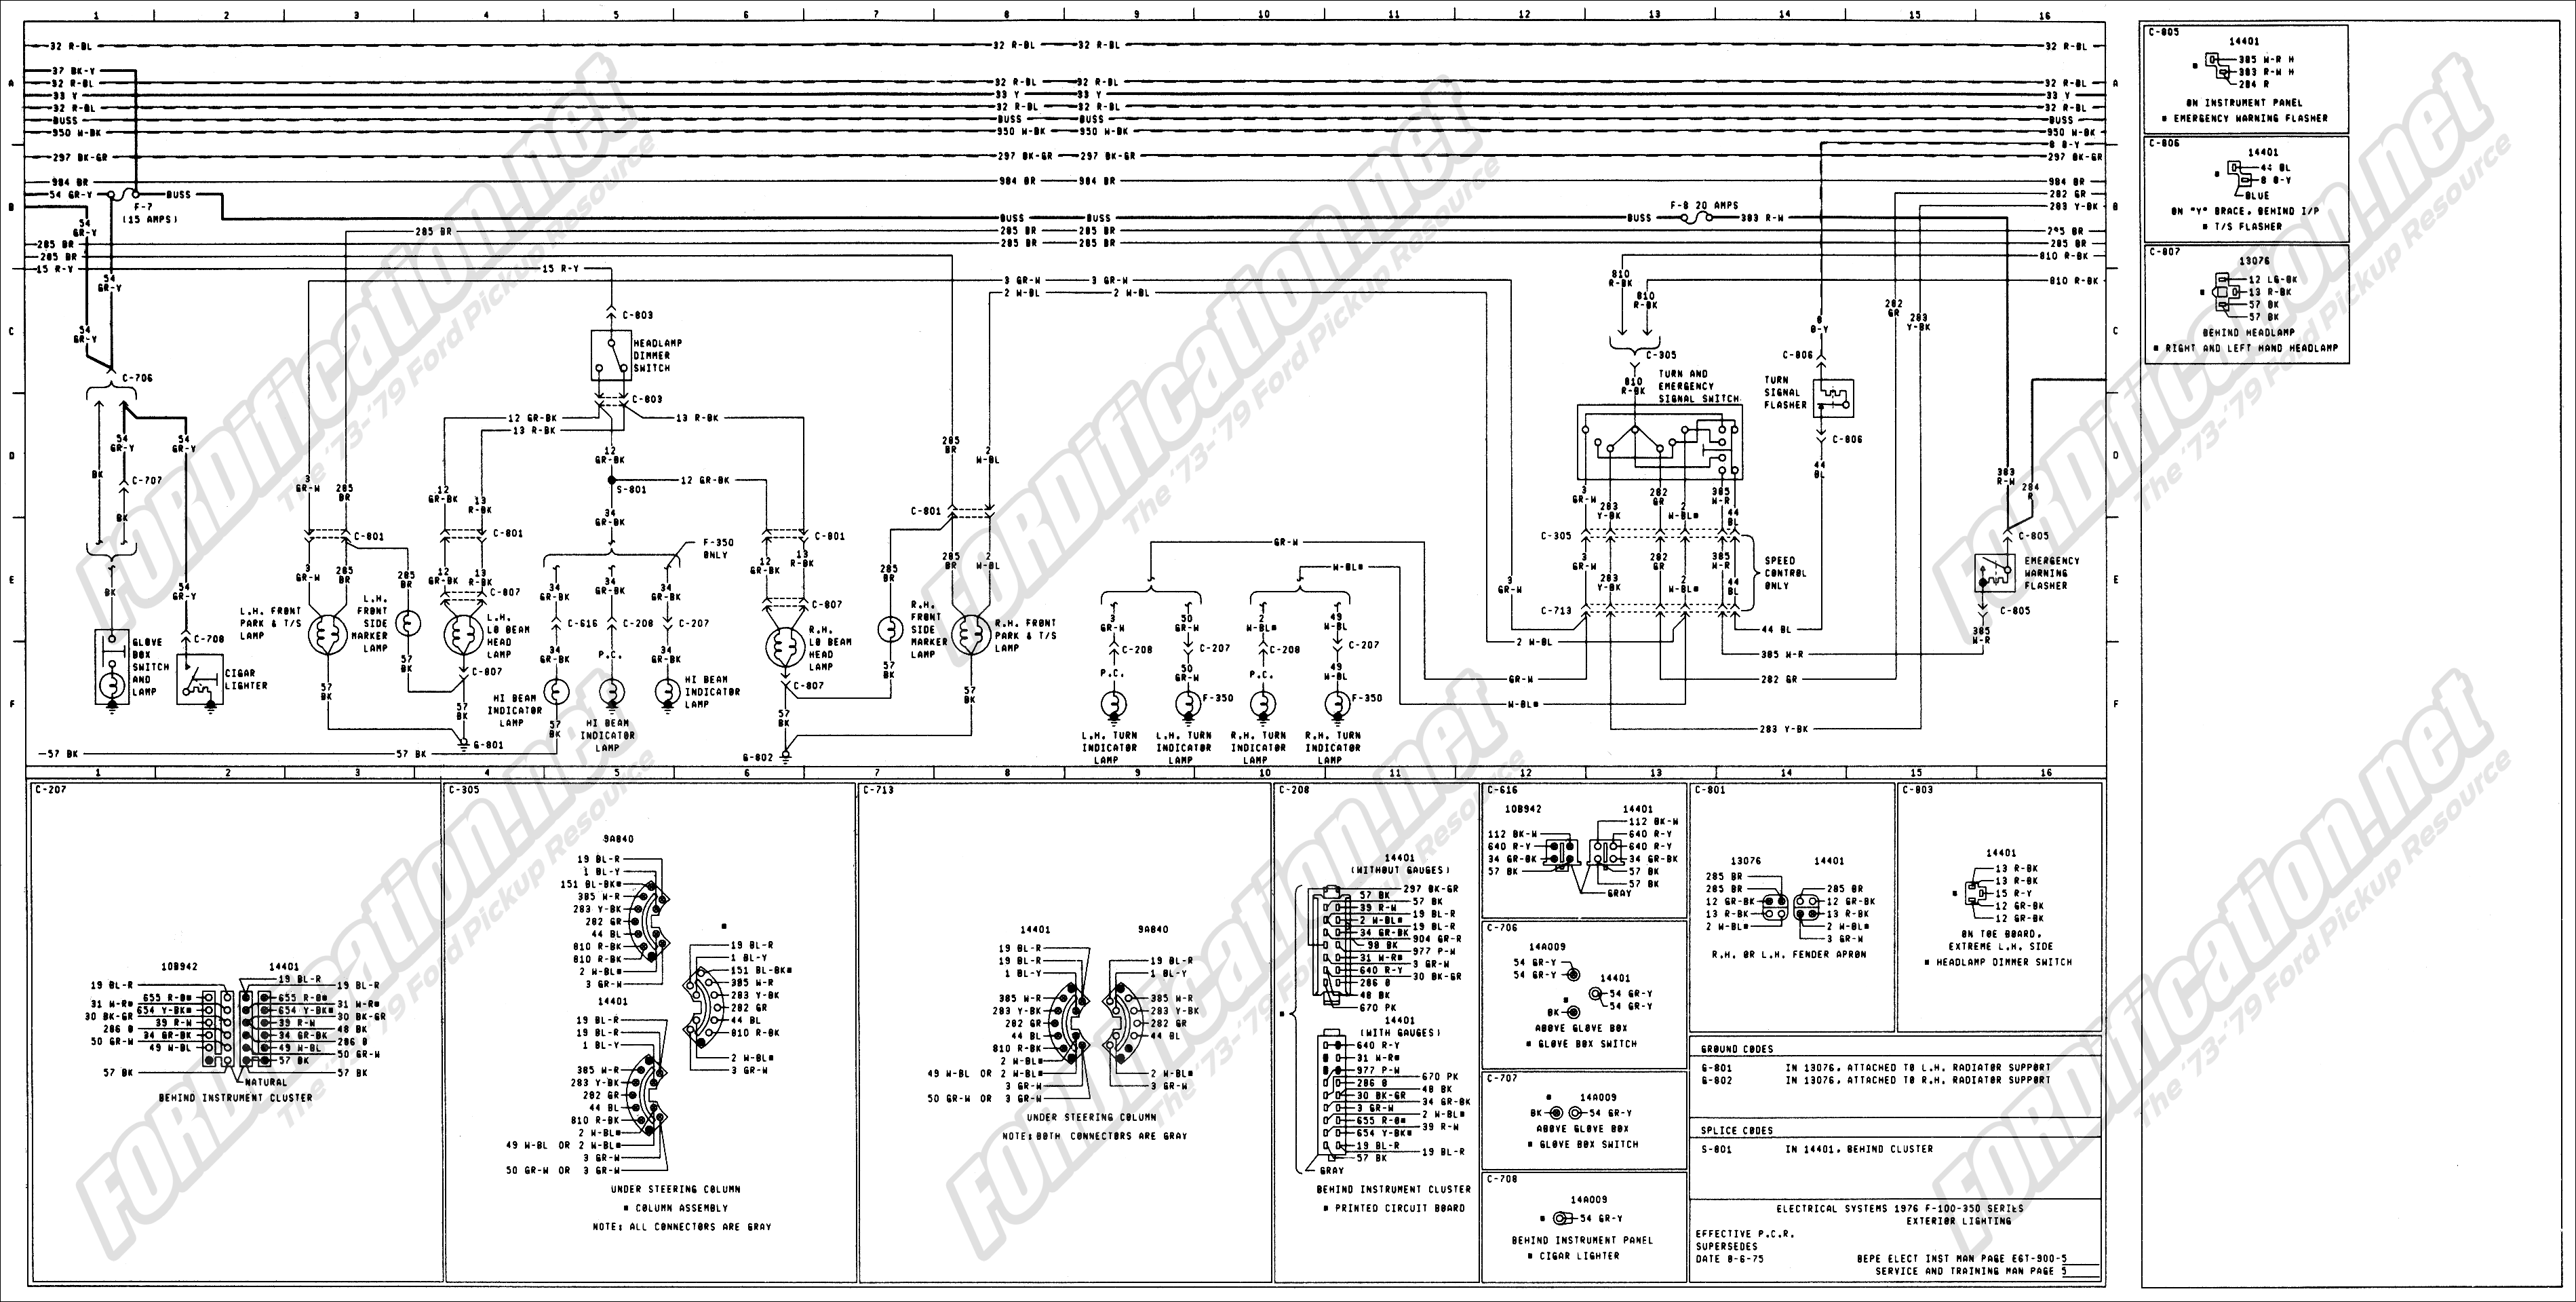 1978 Ford Mustang Ii Wiring Diagram Opinions About 1967 Light 1975 Online Schematics Rh Delvato Co 1966